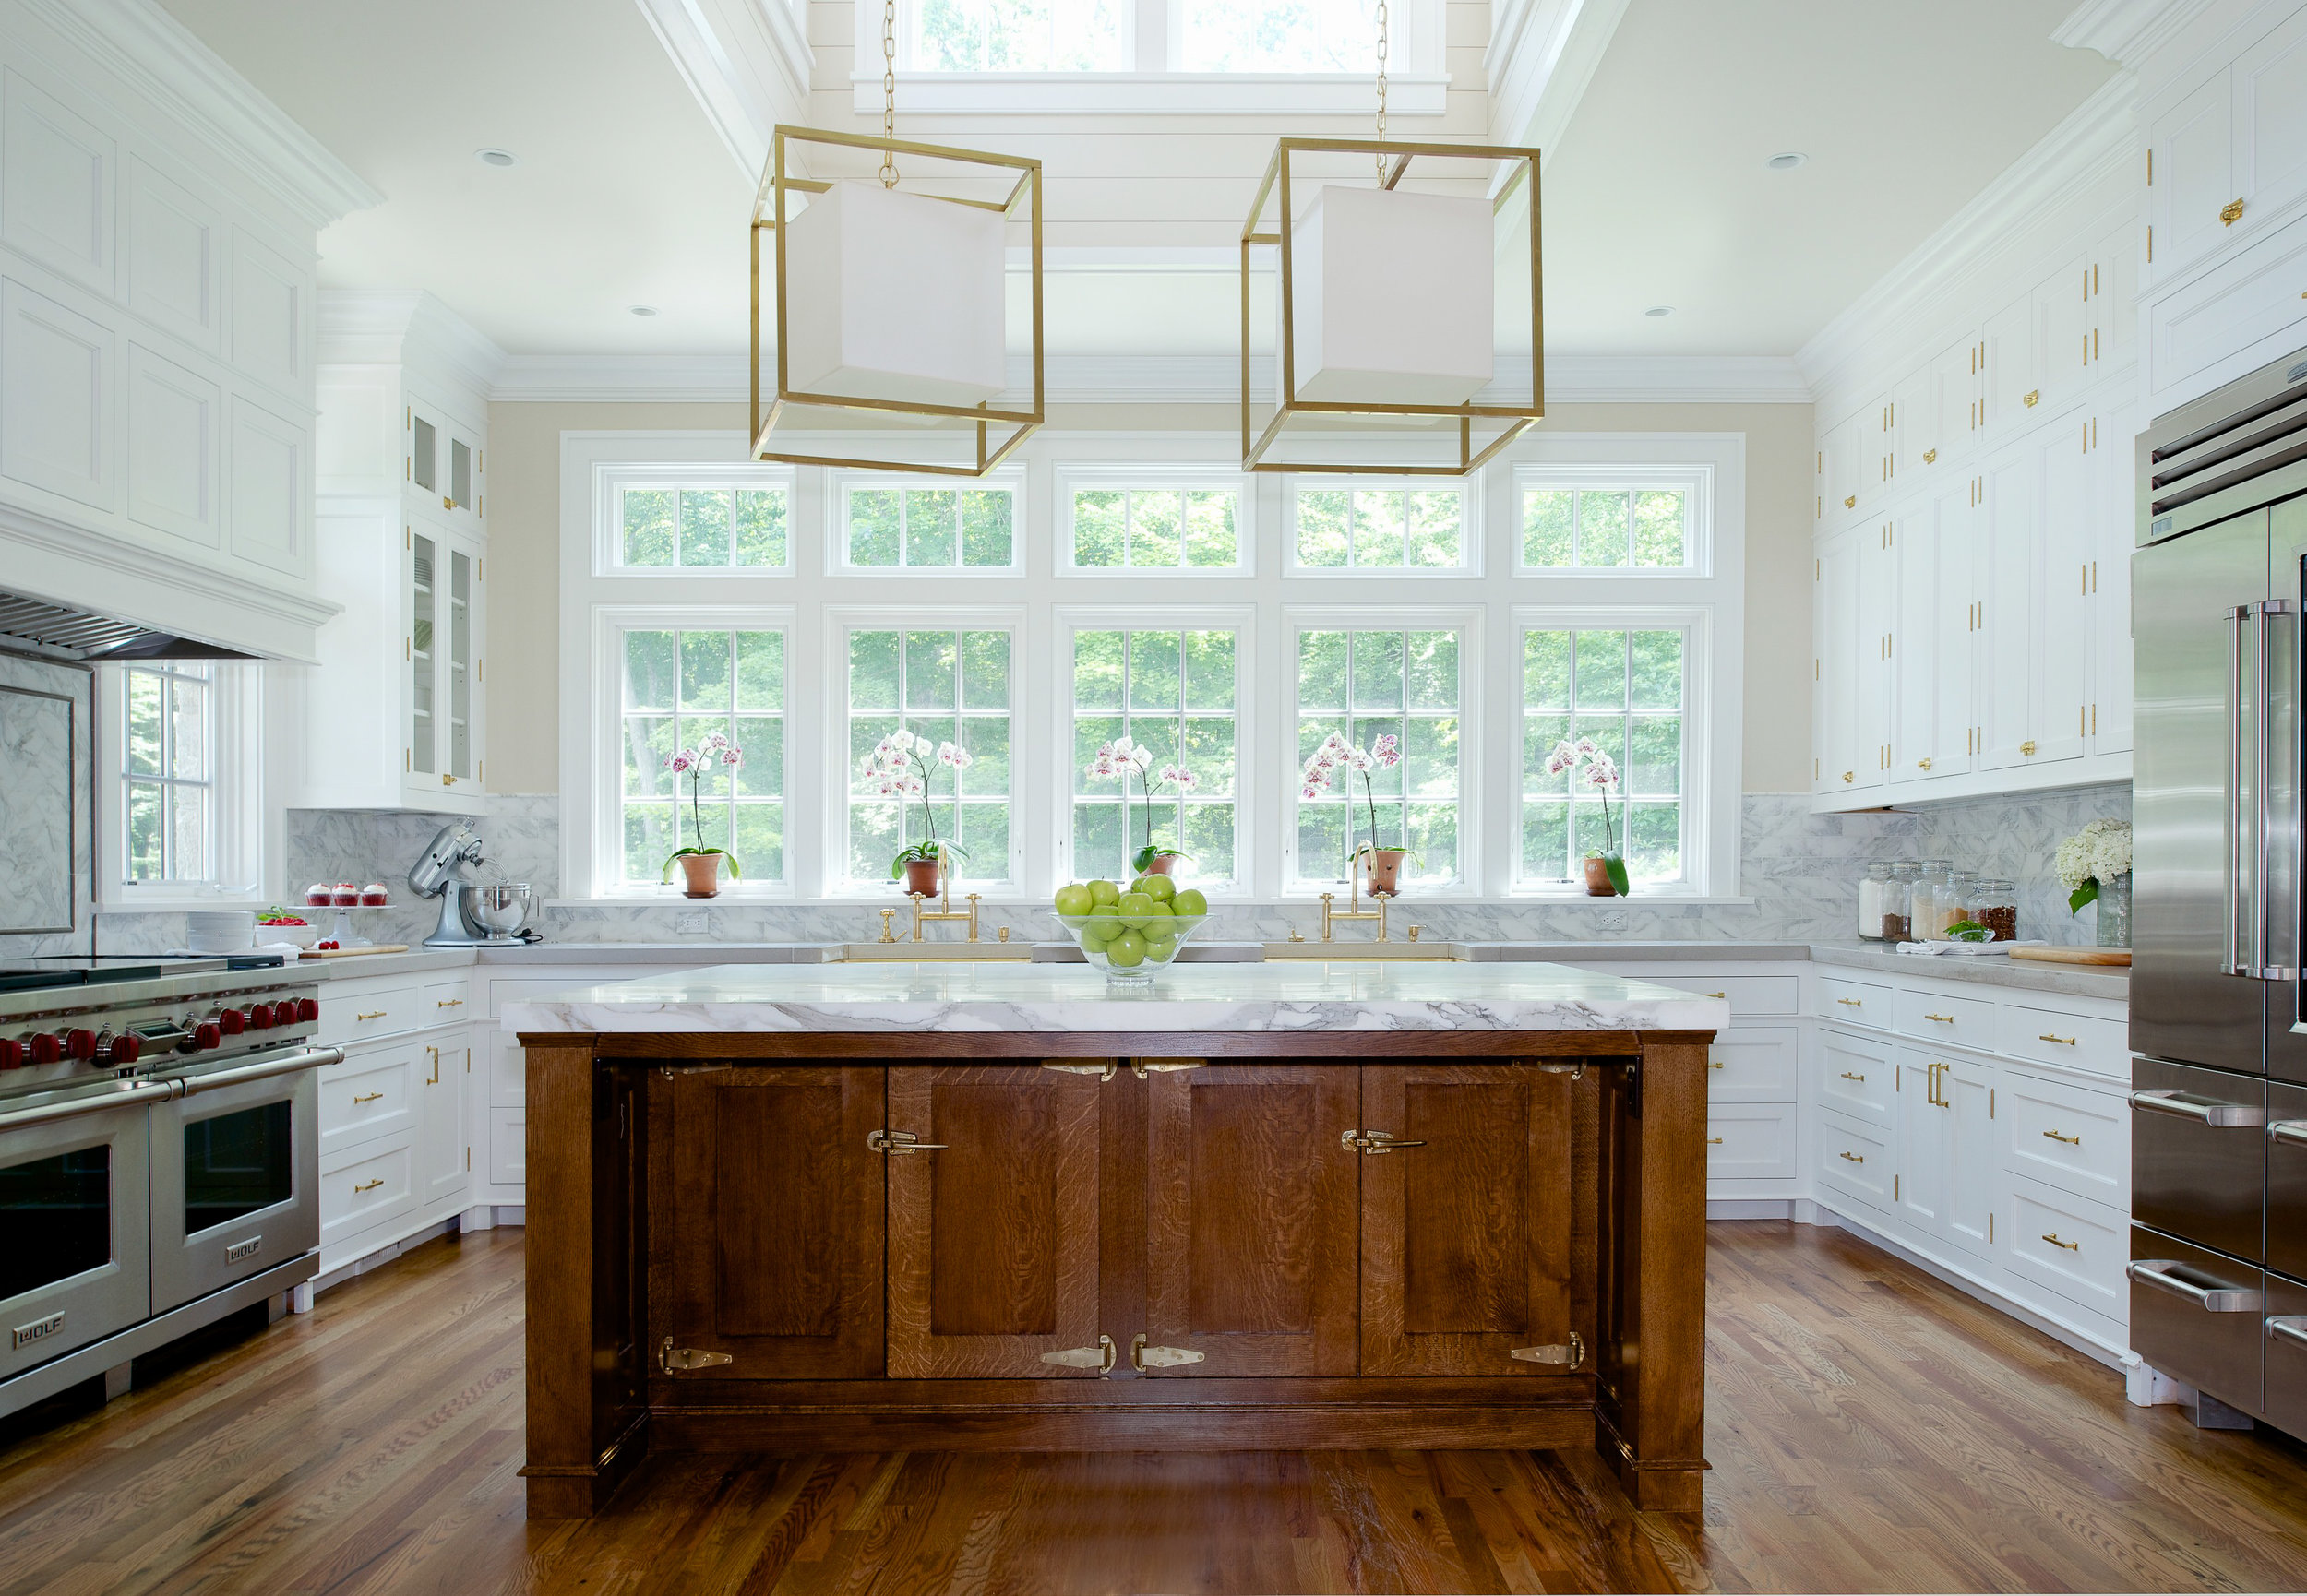 Kitchens Titus Built S Award Wining Kitchens In Fairfield County